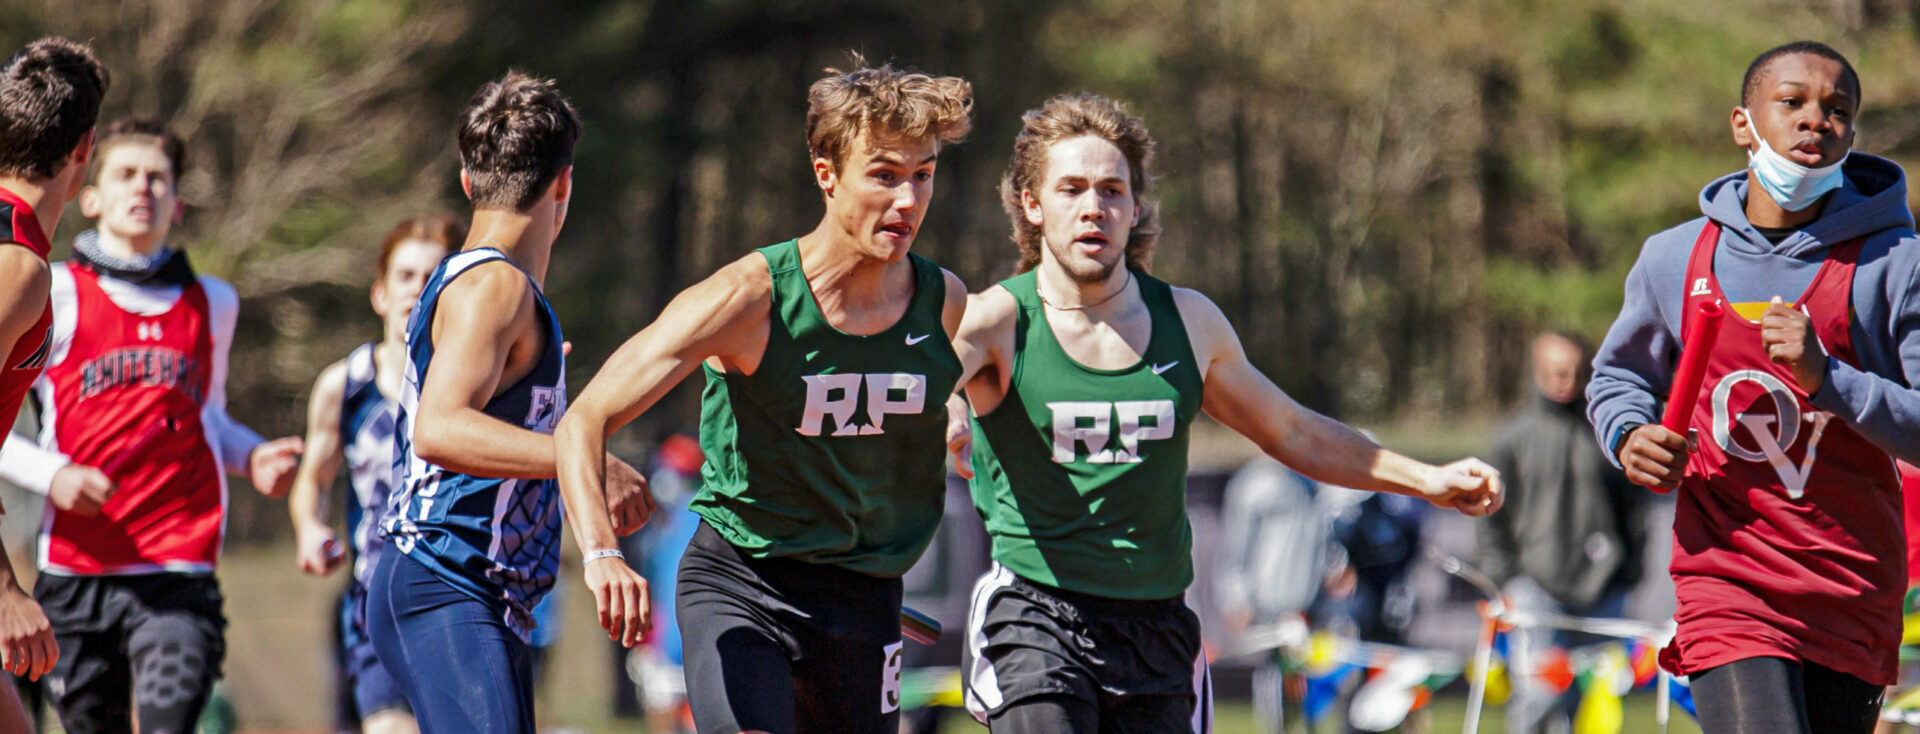 Reeths-Puffer's Grant sweeps distance events, leading Rocket boys to first city meet track championship in 15 years